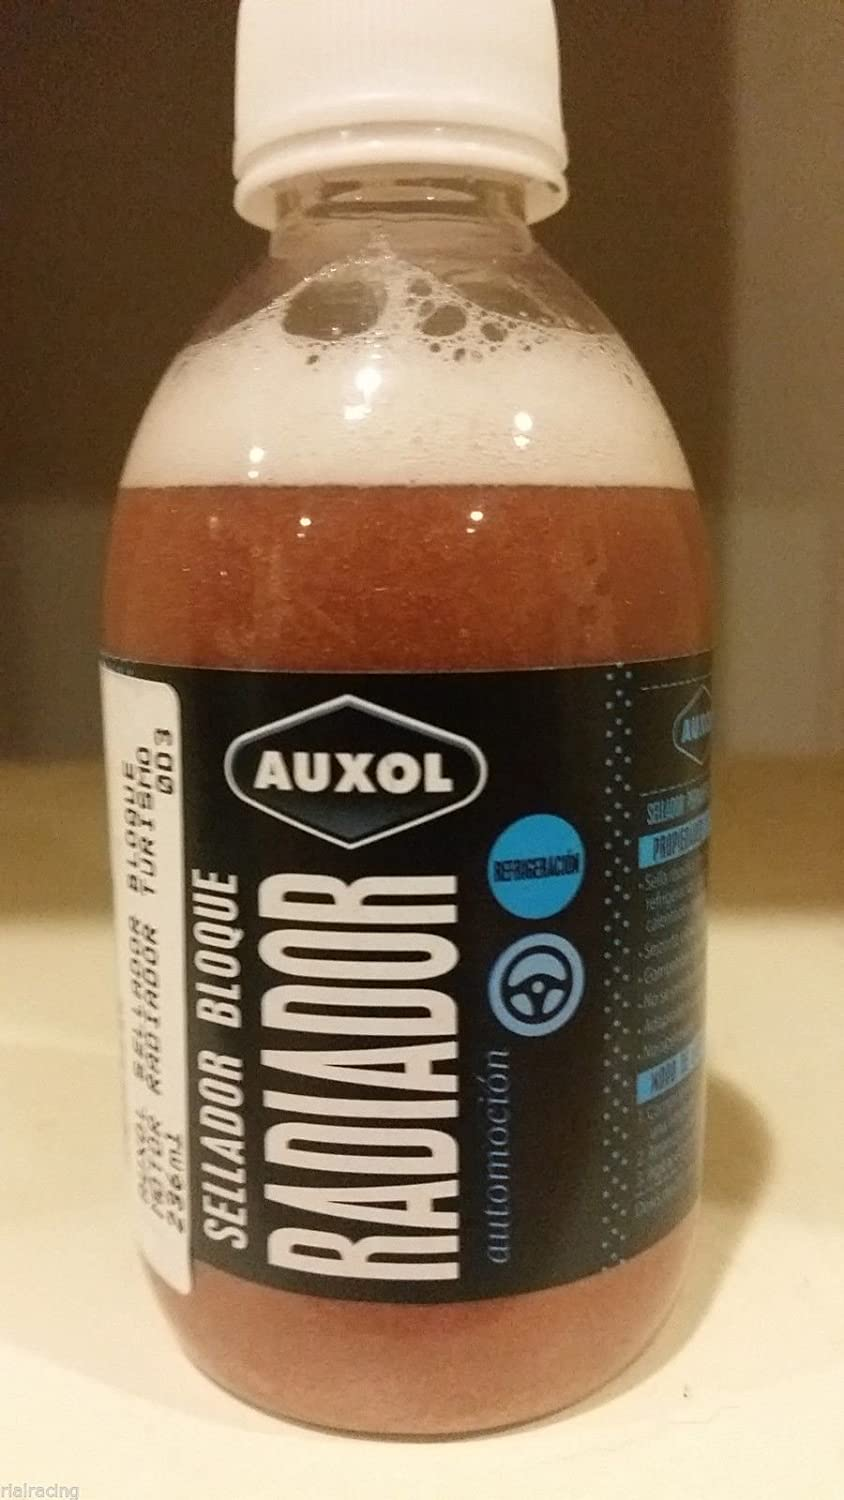 auxol 17822323 Sellador Permanente Bloque-Radiador: Amazon.es ...